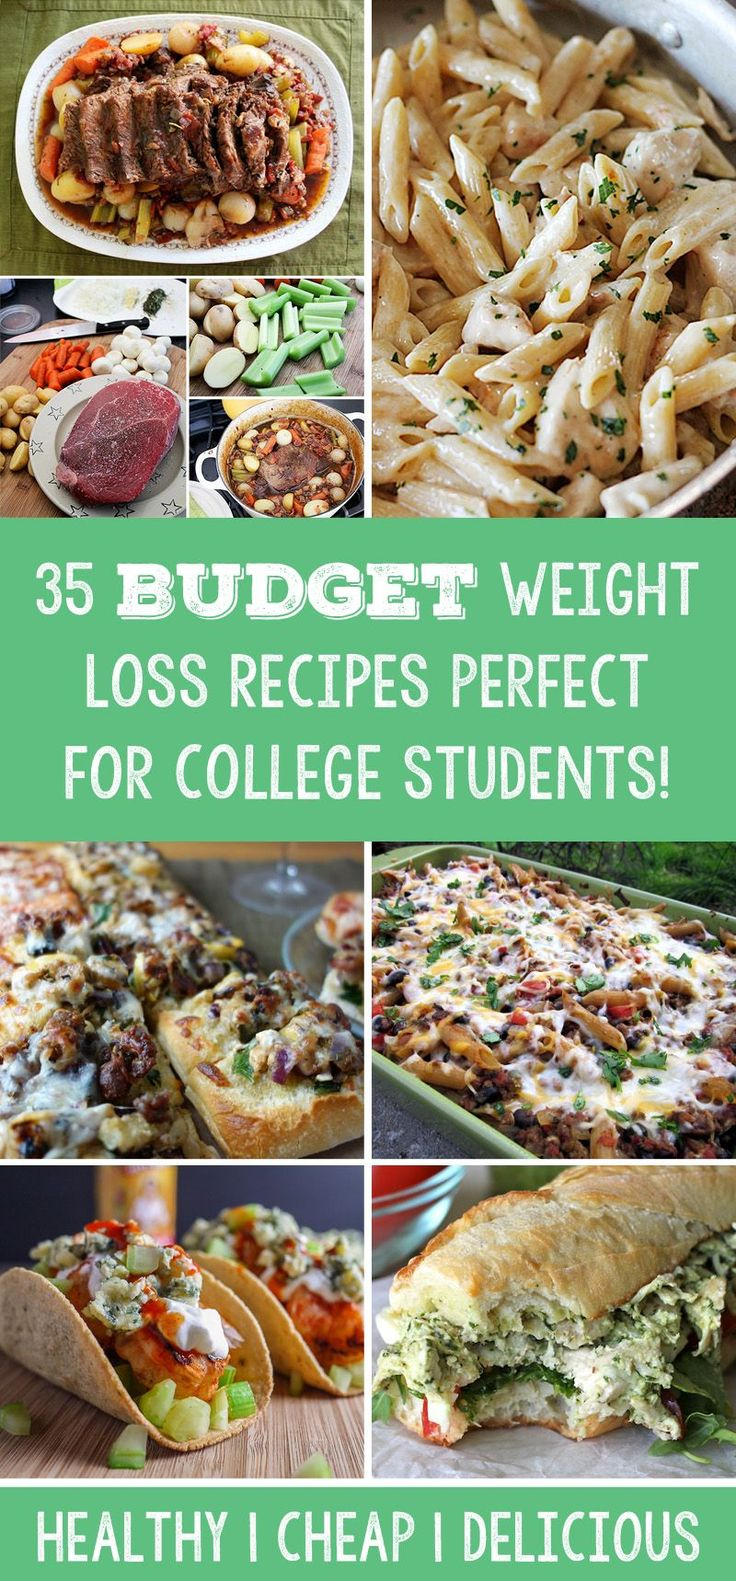 35 Budget Weight Loss Recipes Perfect For College Students! – TrimmedandToned